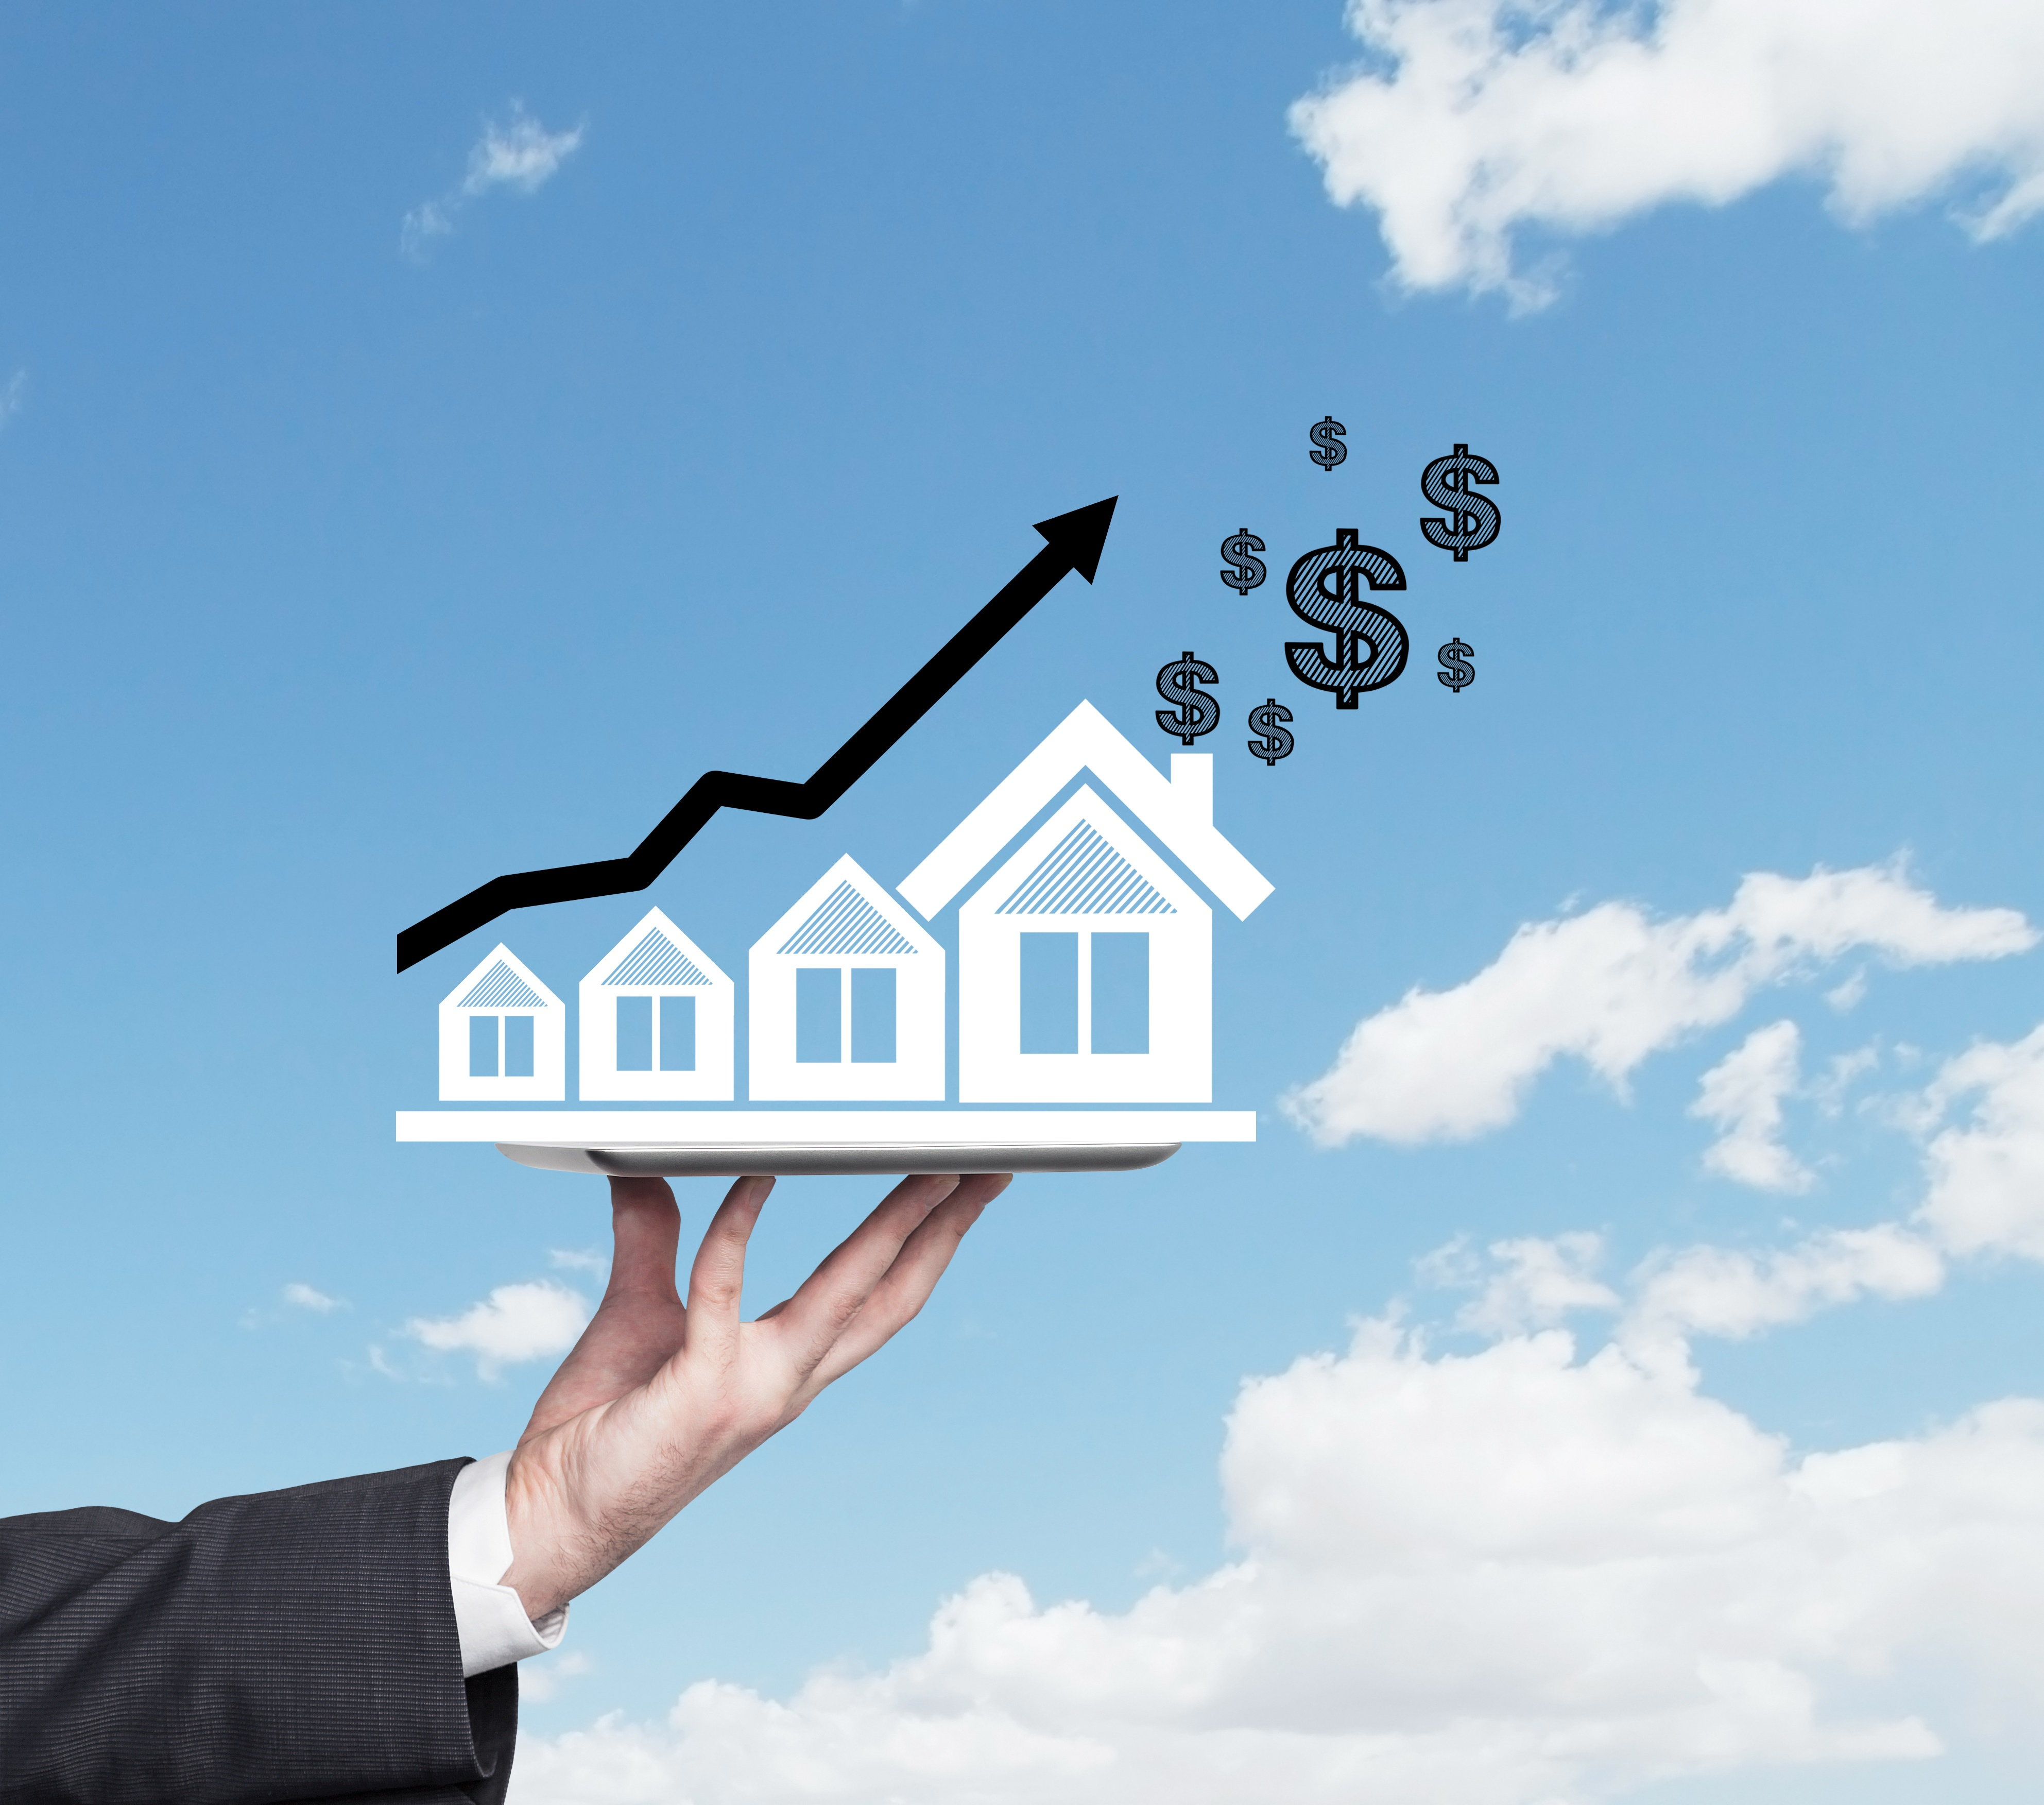 Business man's Hand holding a house against a blue sky, with bar graph above, showing growth and $$$ in the distance